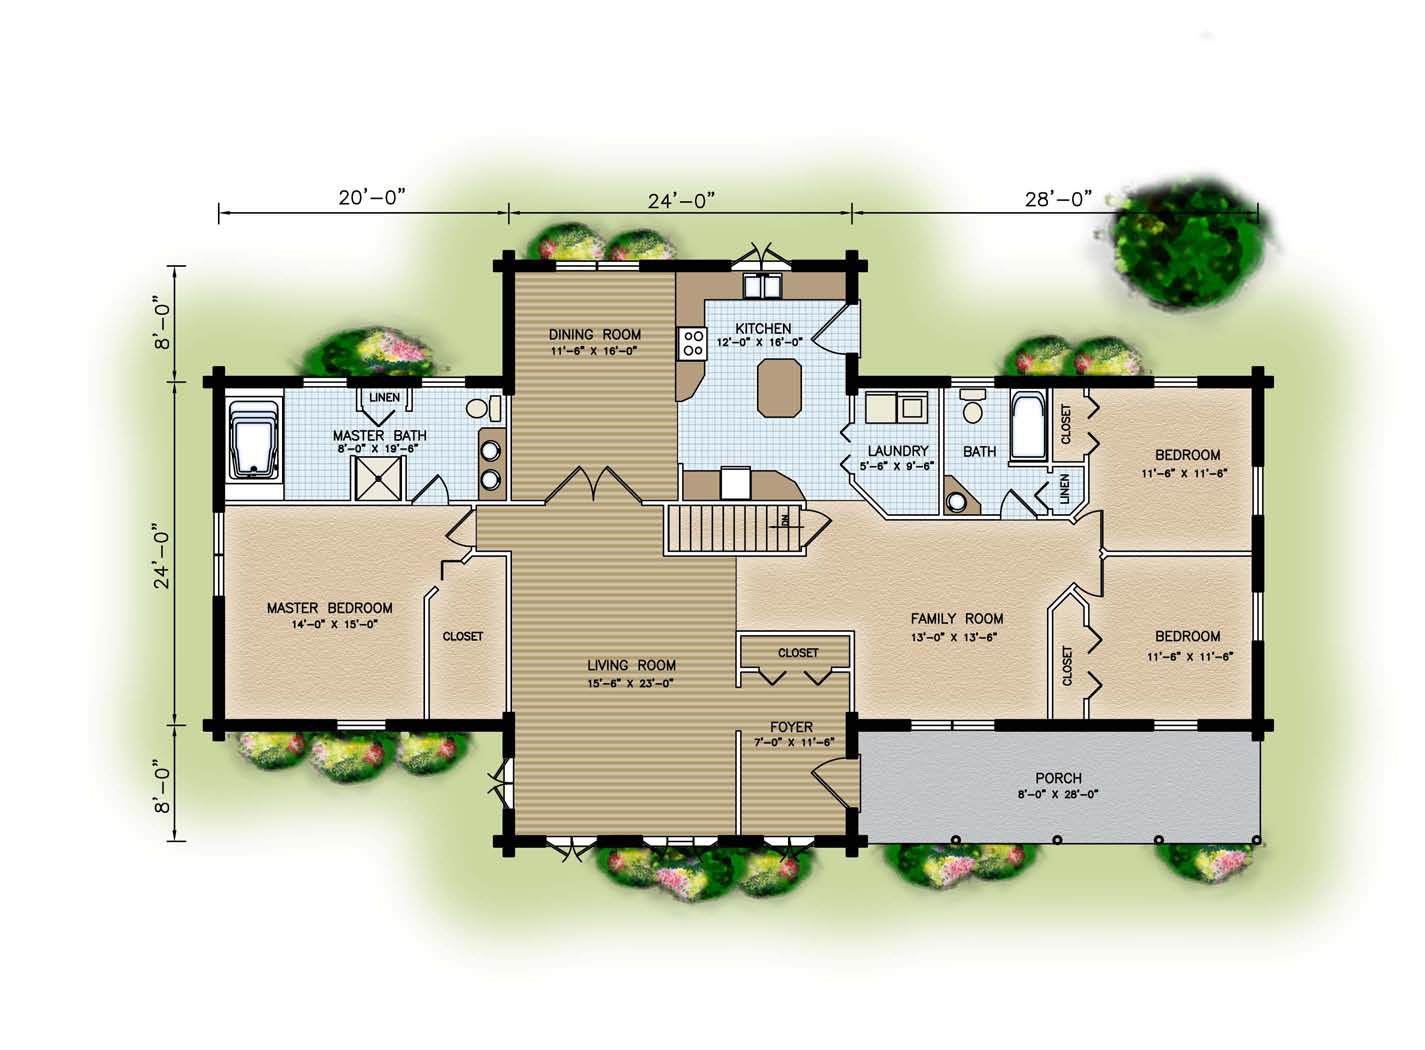 House Plans | Home Plans | Floor Plans - Find house plans at The